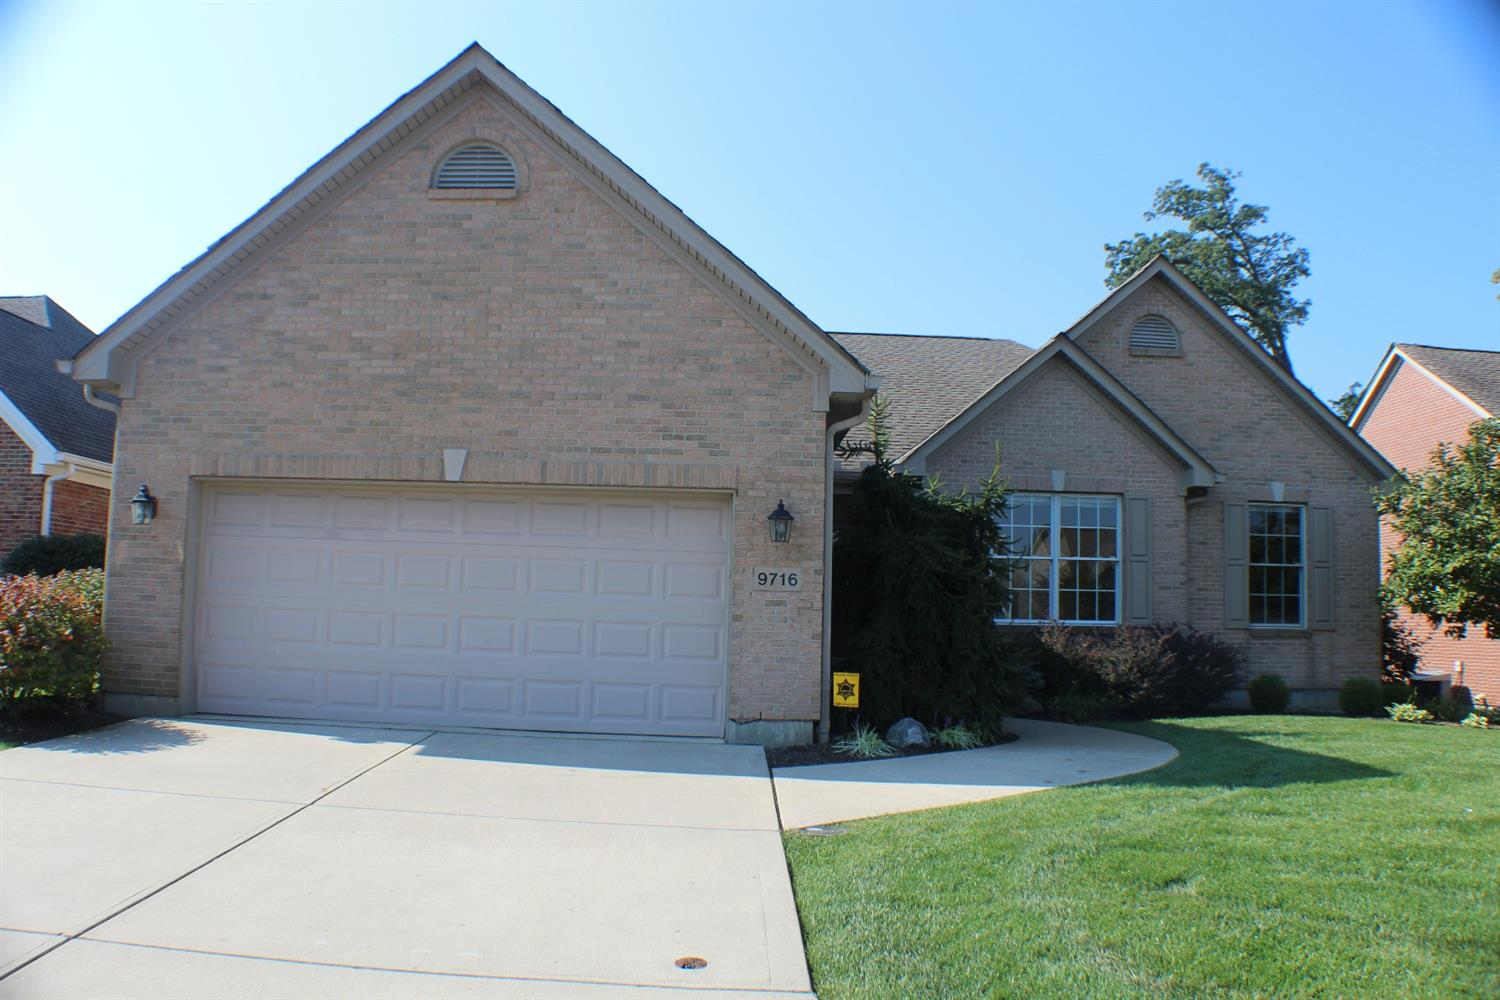 9716 Pebble View Dr Colerain Twp.West, OH